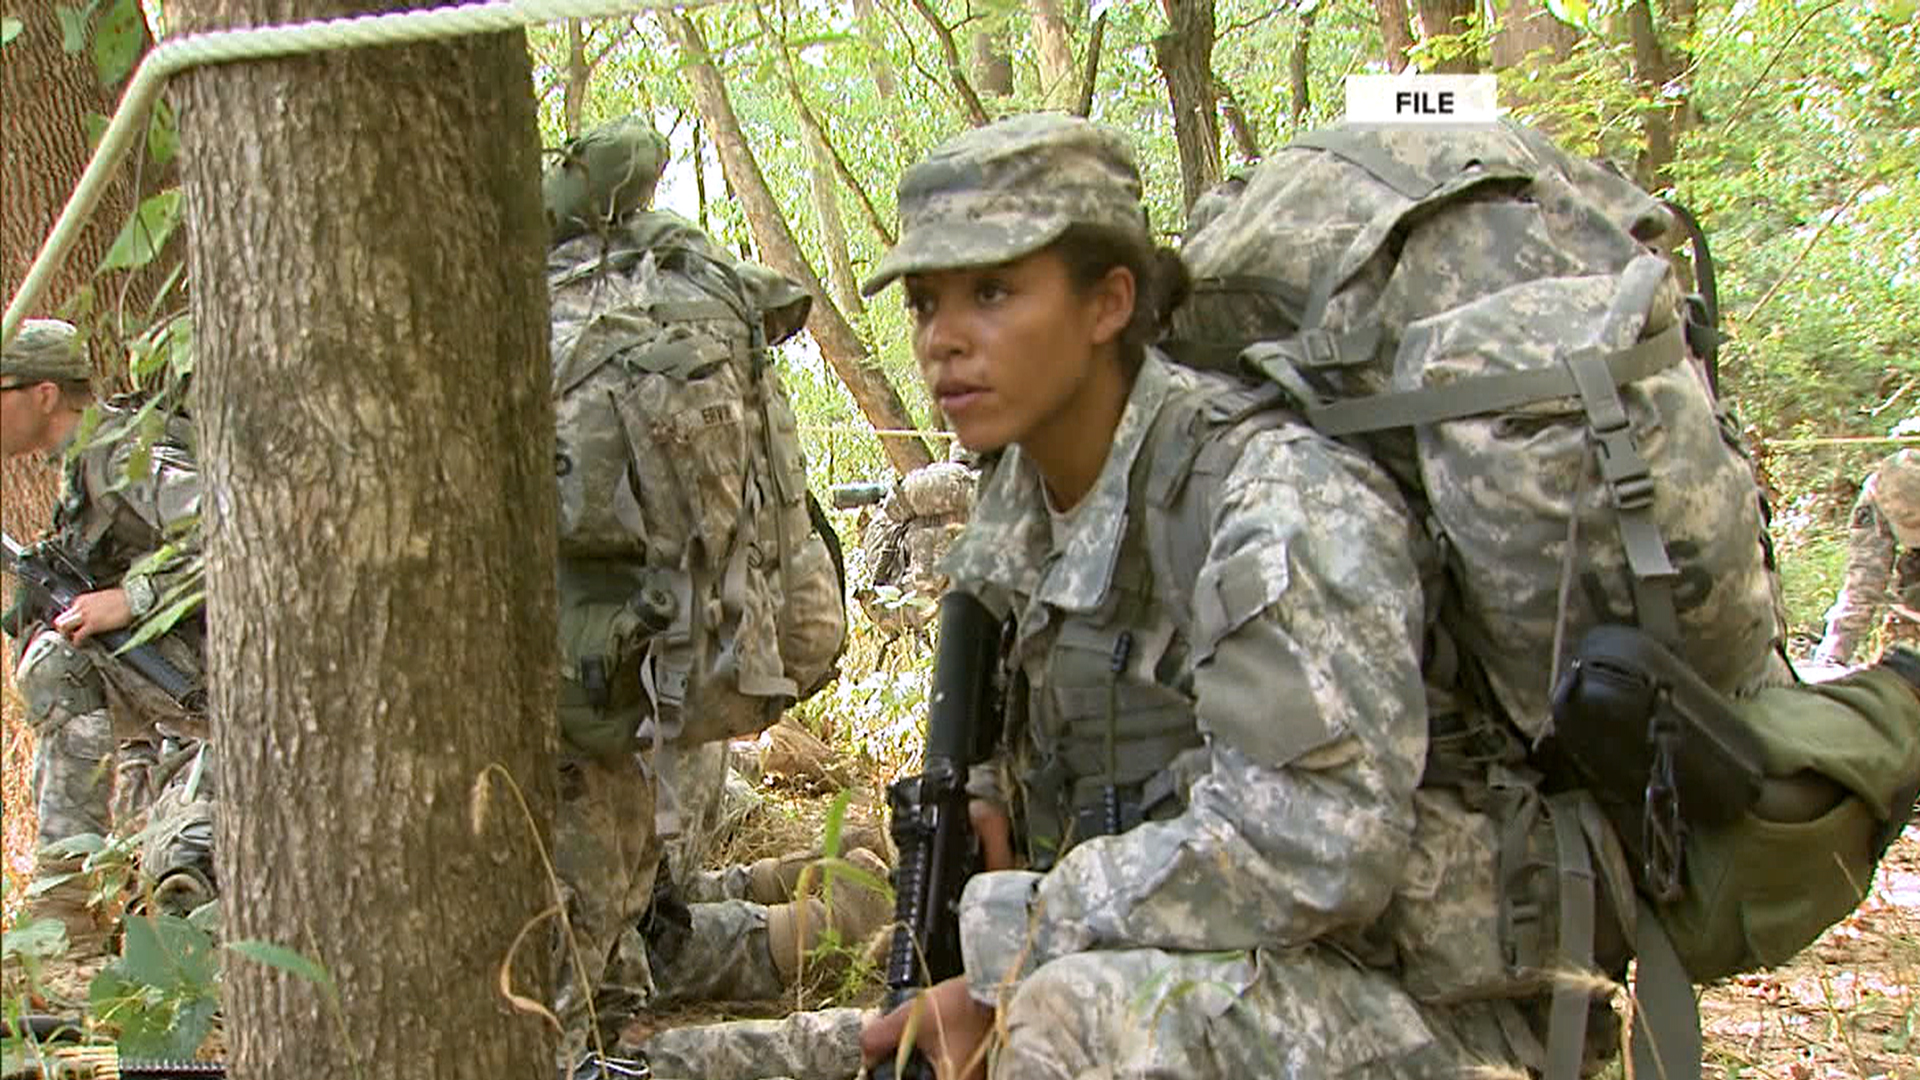 All U S  military combat roles now open to women, Pentagon announces